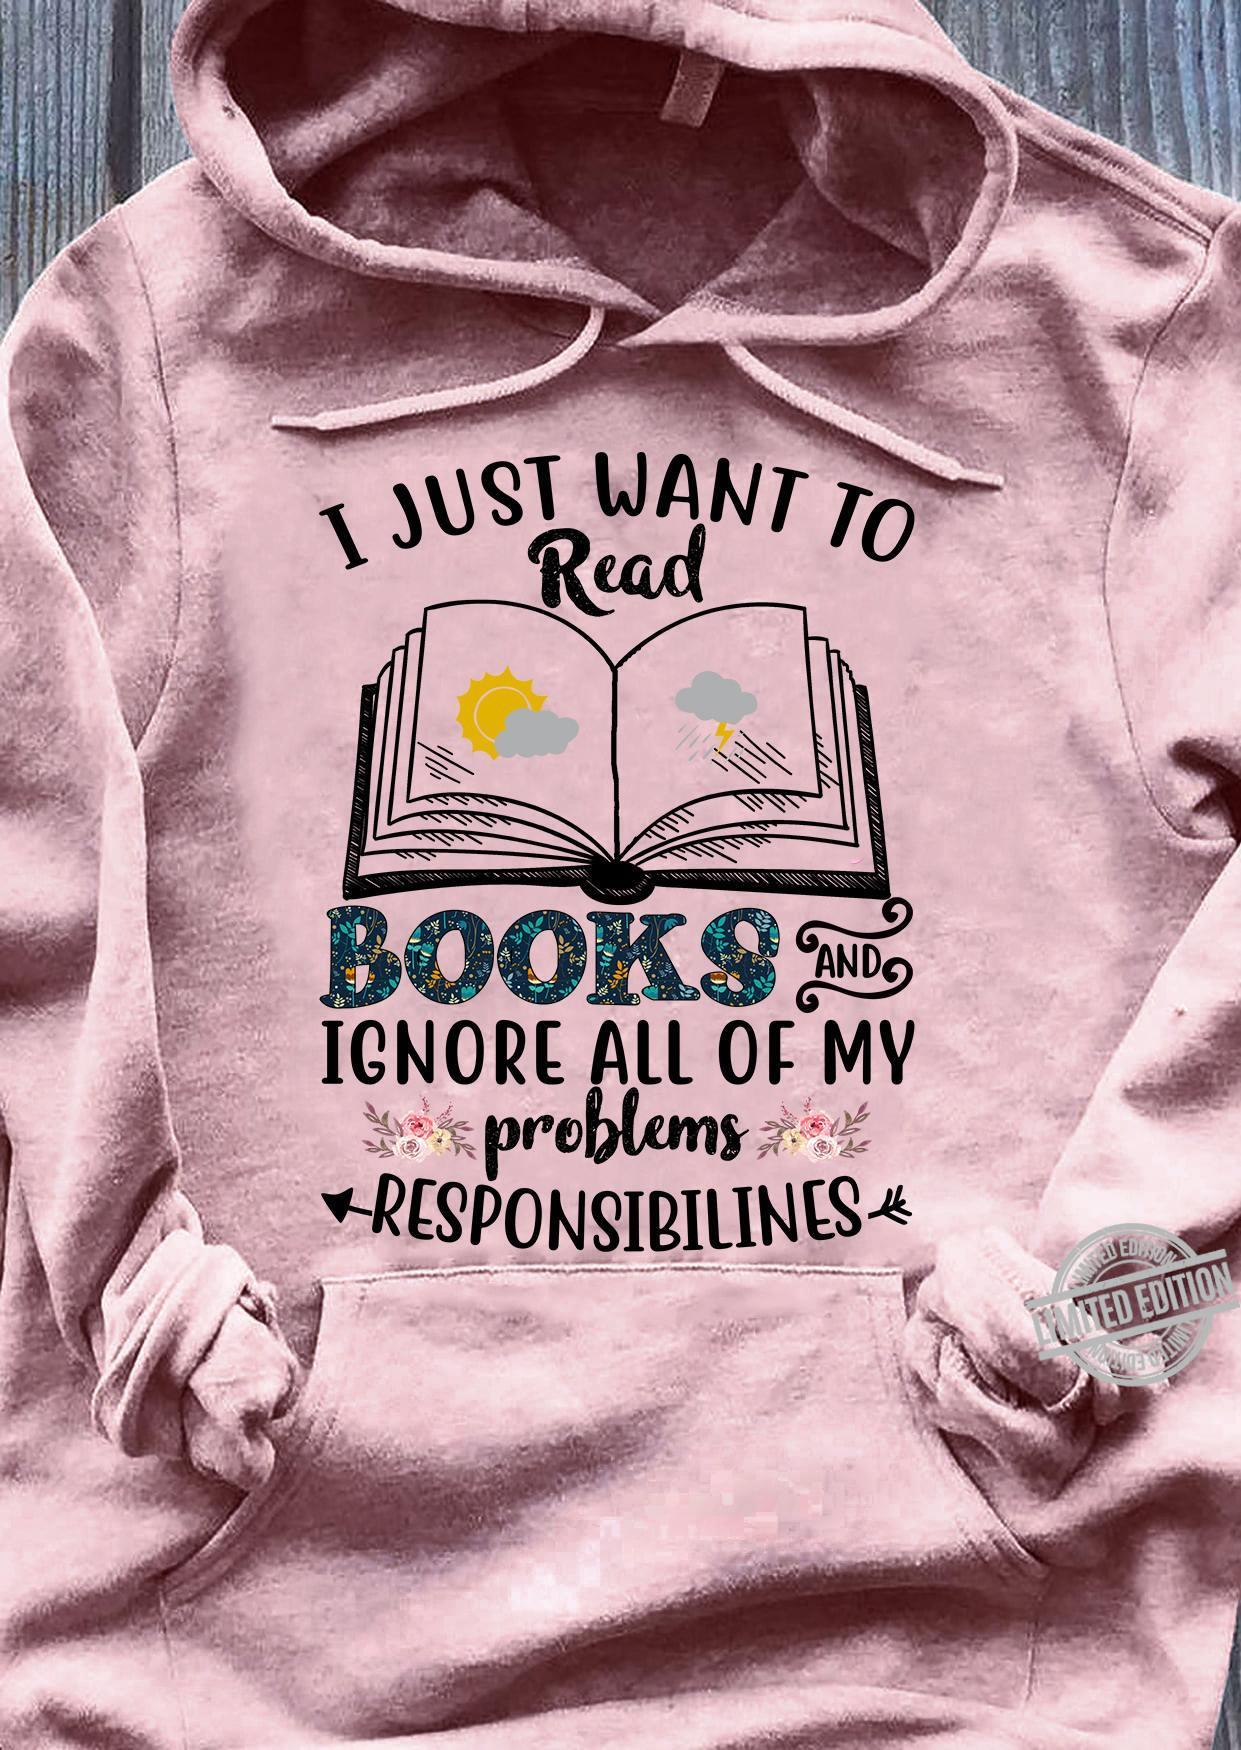 I Just Want To Read Books And Ignore All Of My Problems Responsibilines Shirt